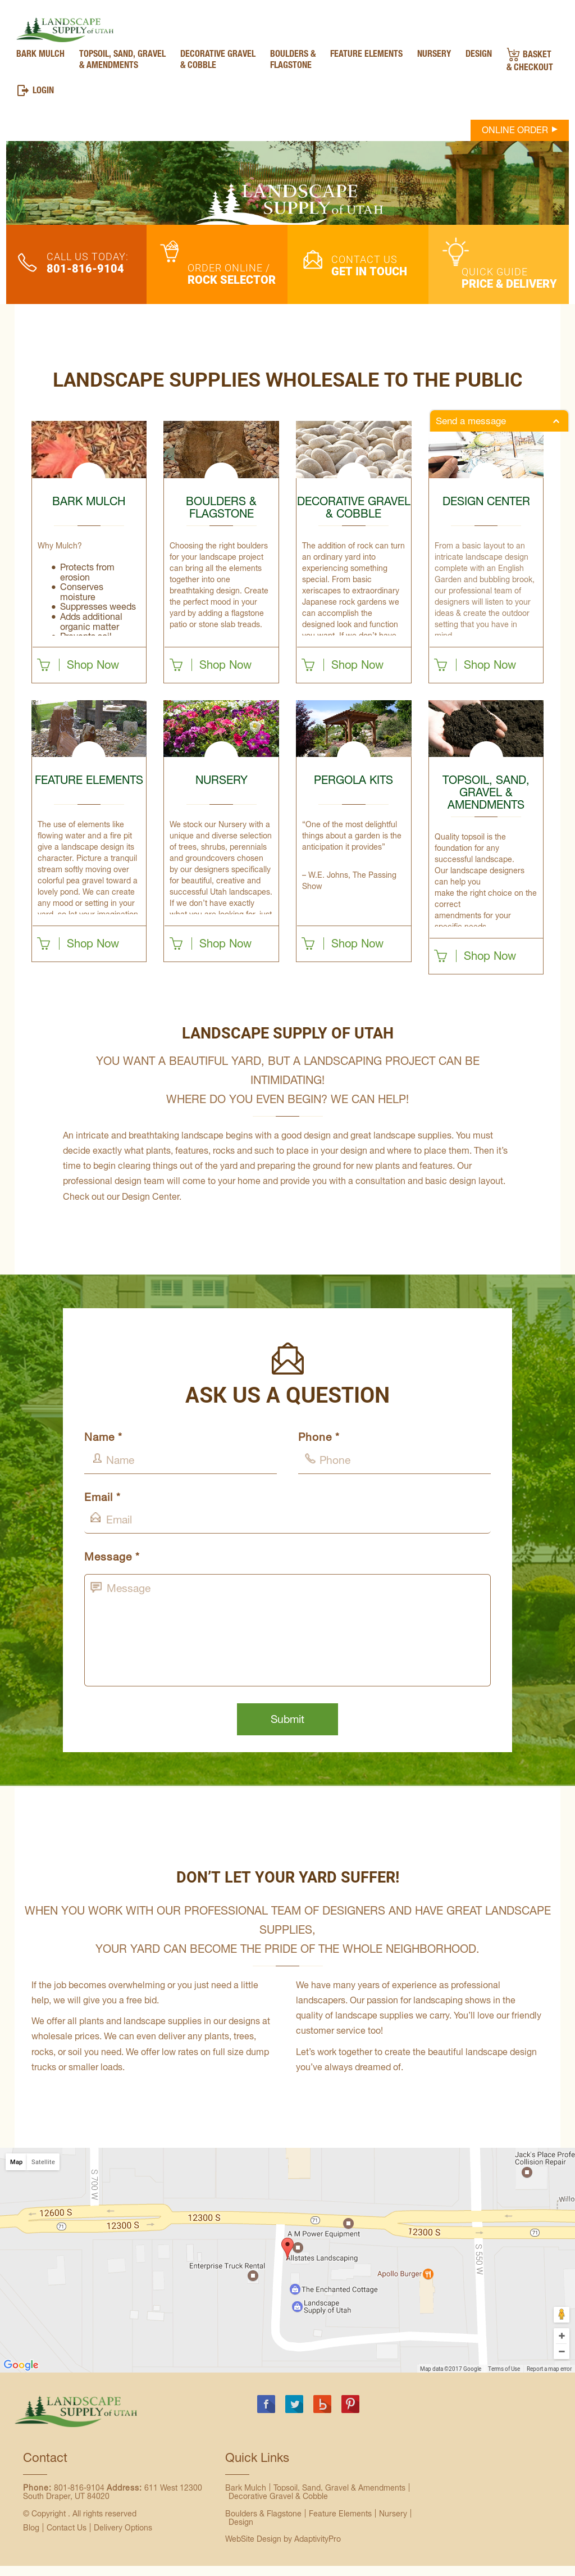 Website History - Landscape Supply Of Utah Competitors, Revenue And Employees - Owler